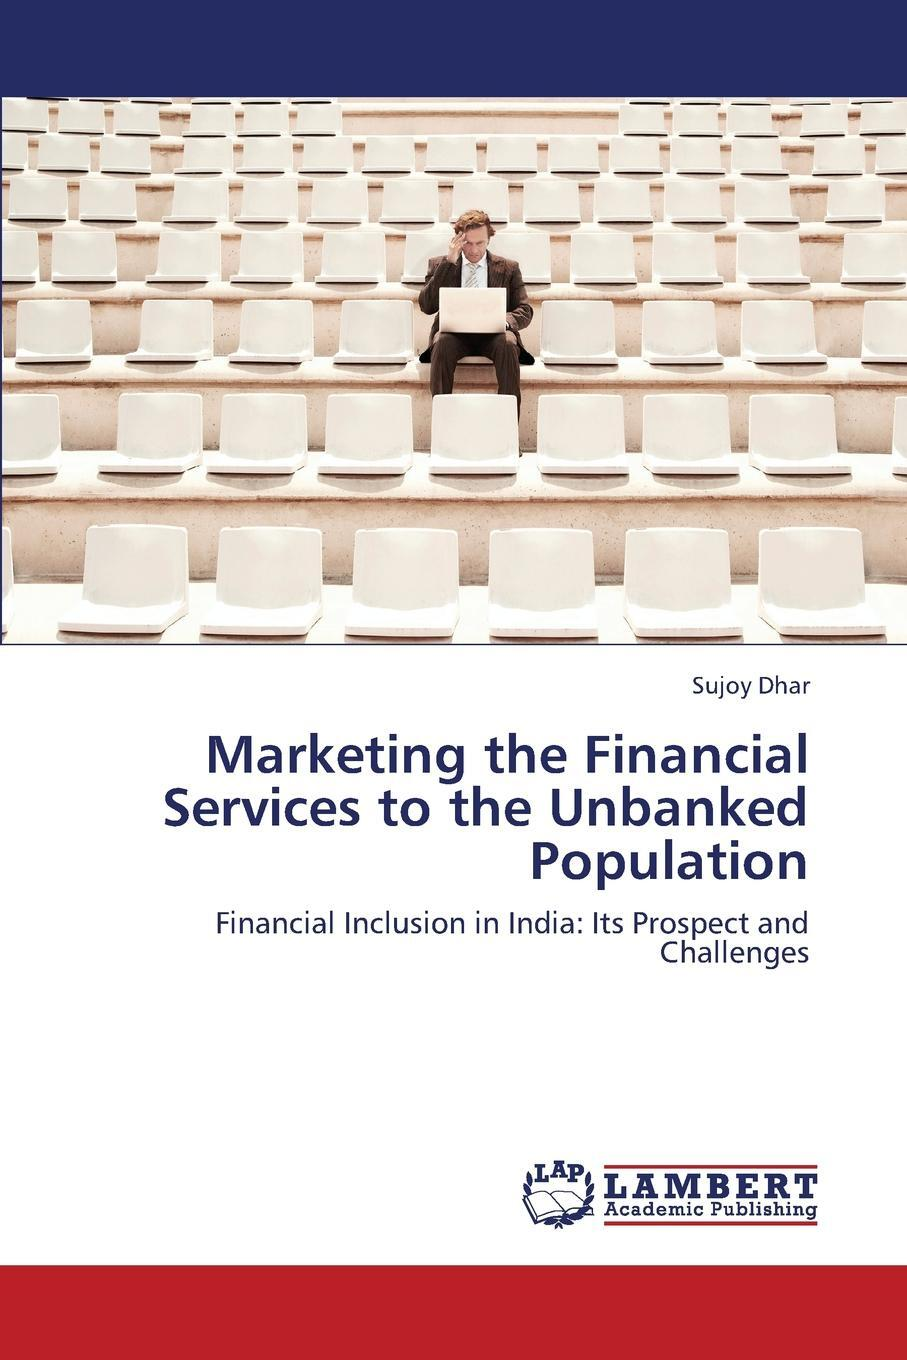 Marketing the Financial Services to the Unbanked Population